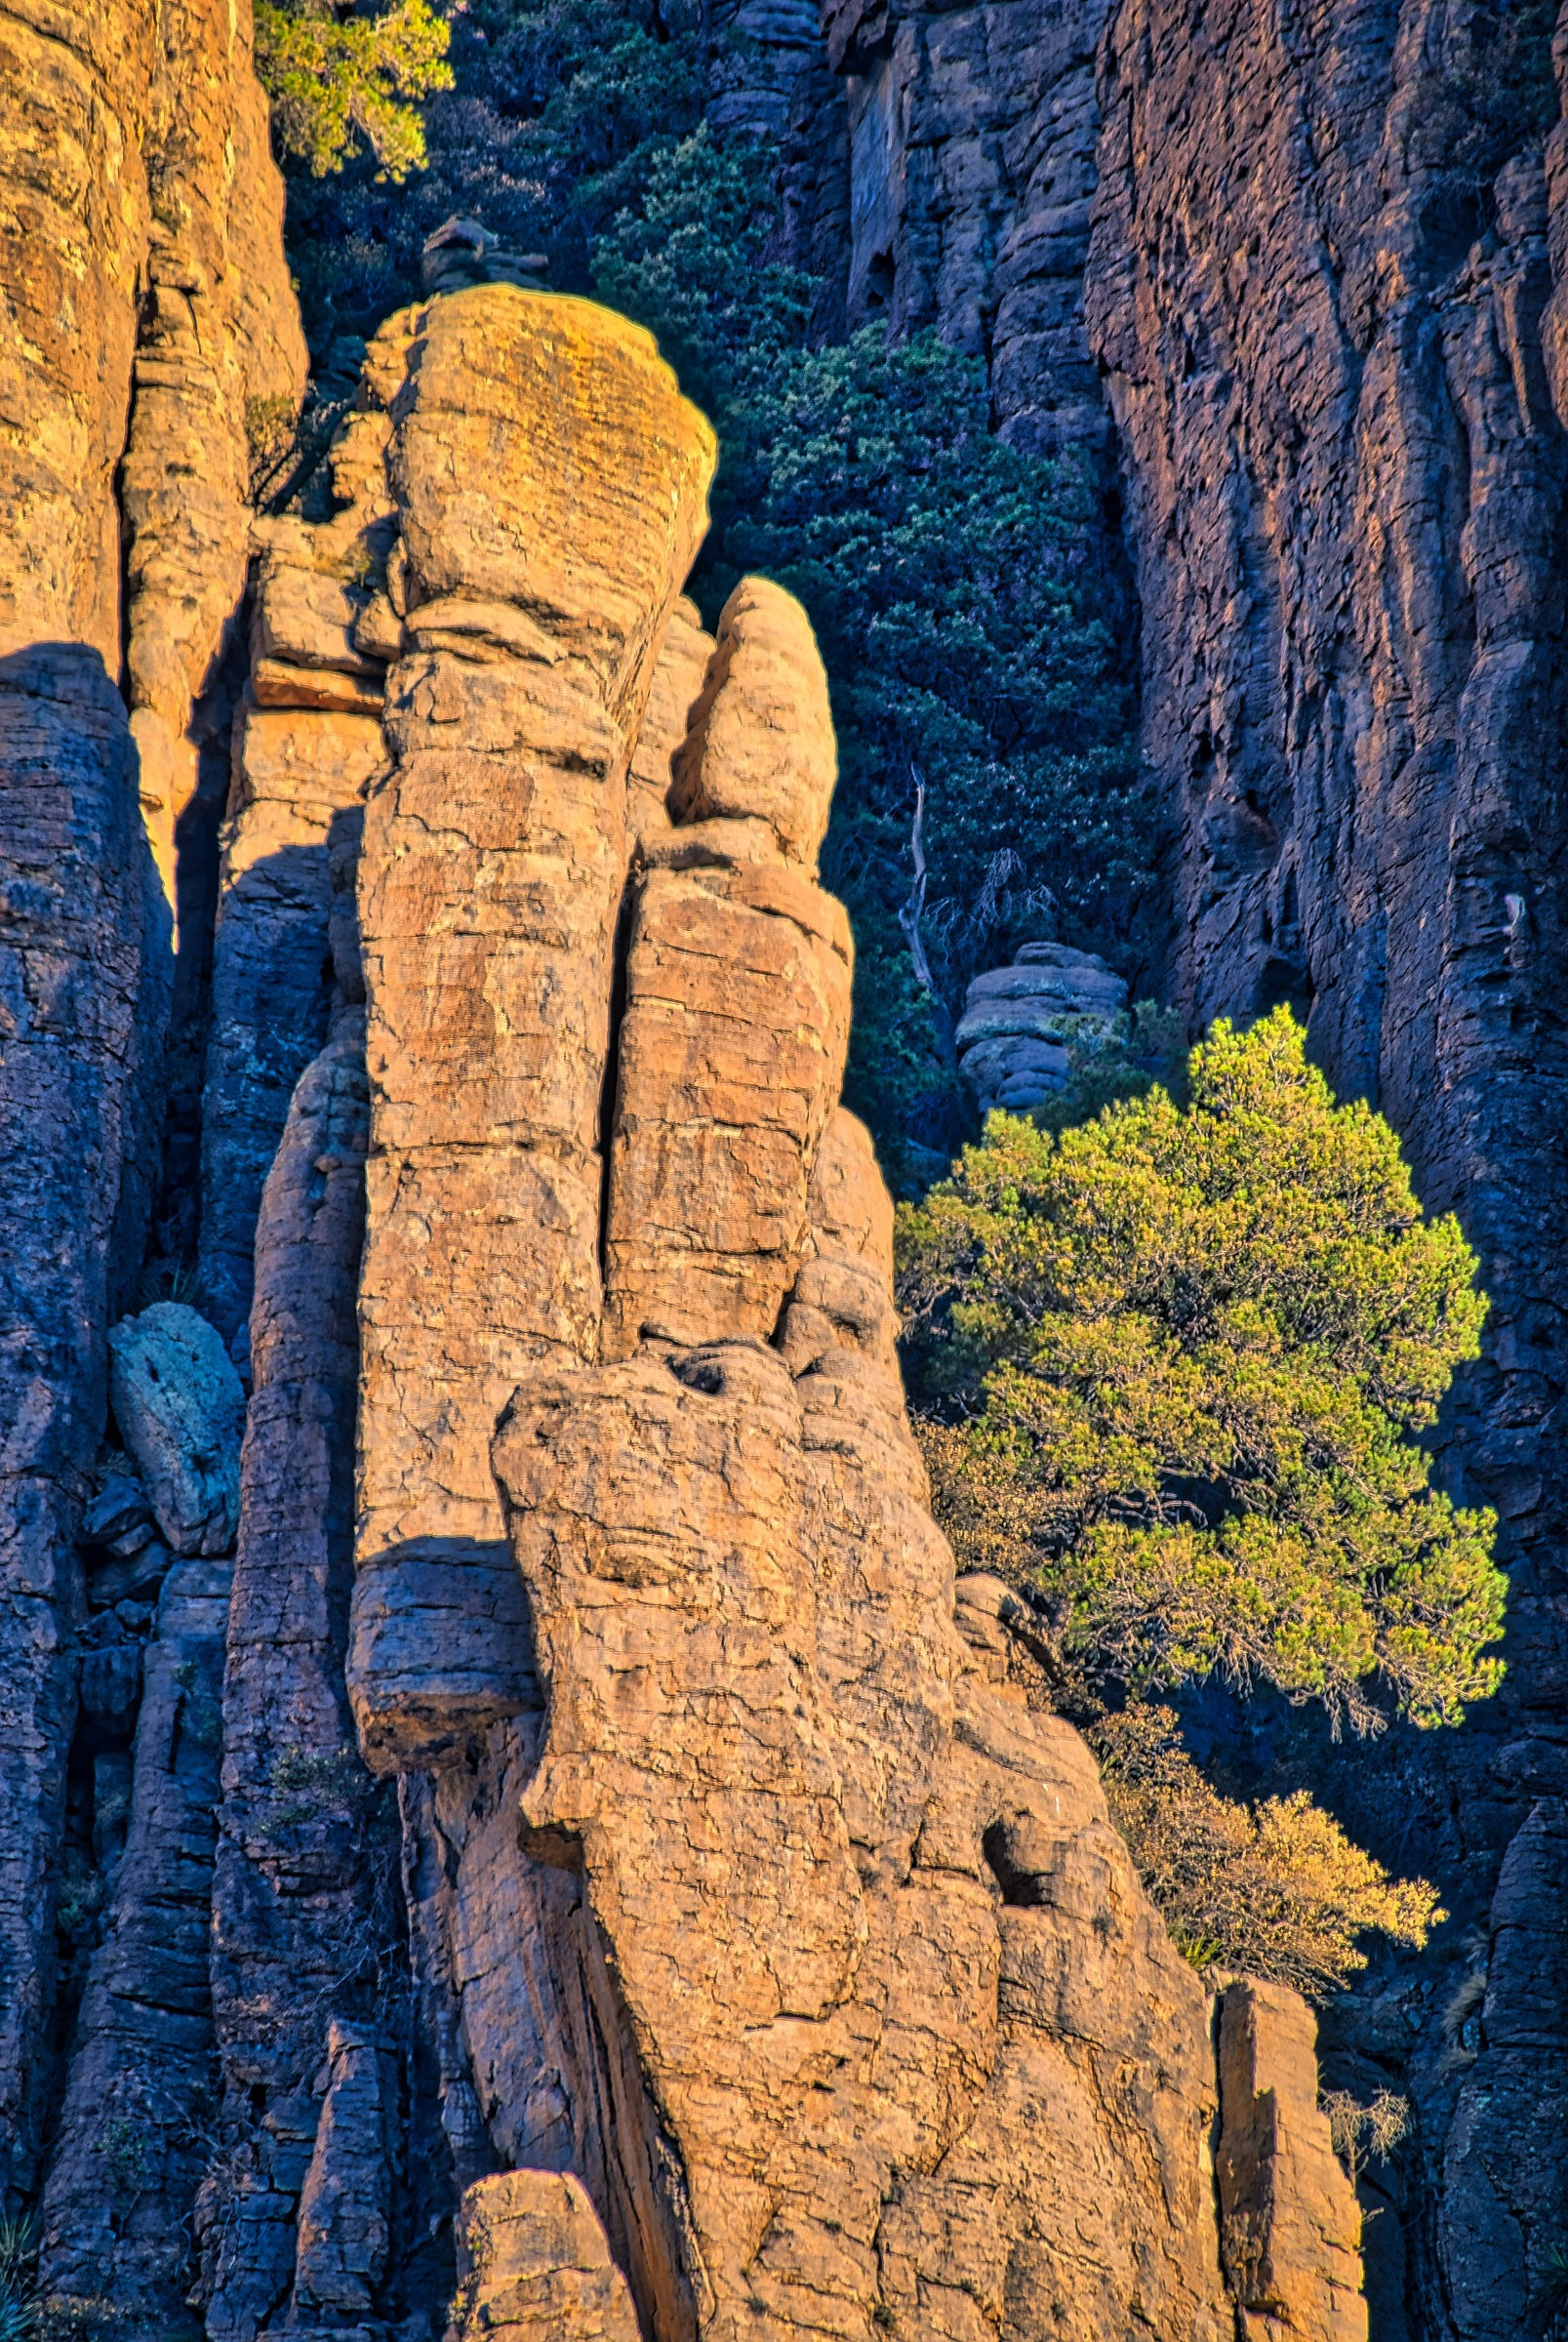 Rock structure of the Organ Pipe Formation in Chiricahua National Monument. The columns are formed of Rhyolite Canyon Tuff.